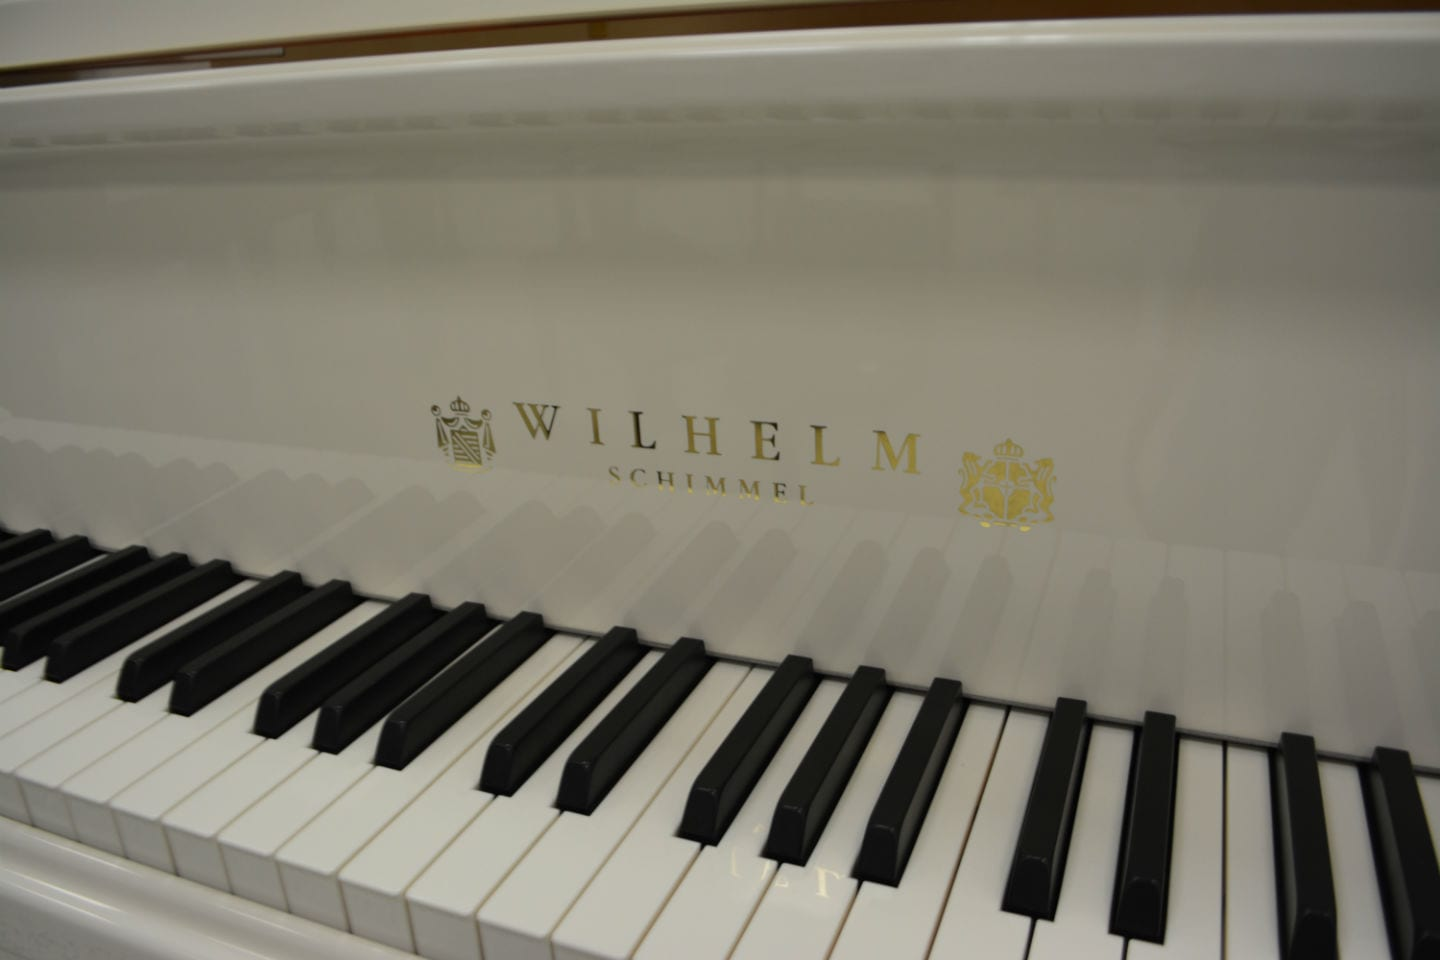 Schimmel 180 Grand Piano - White Polish